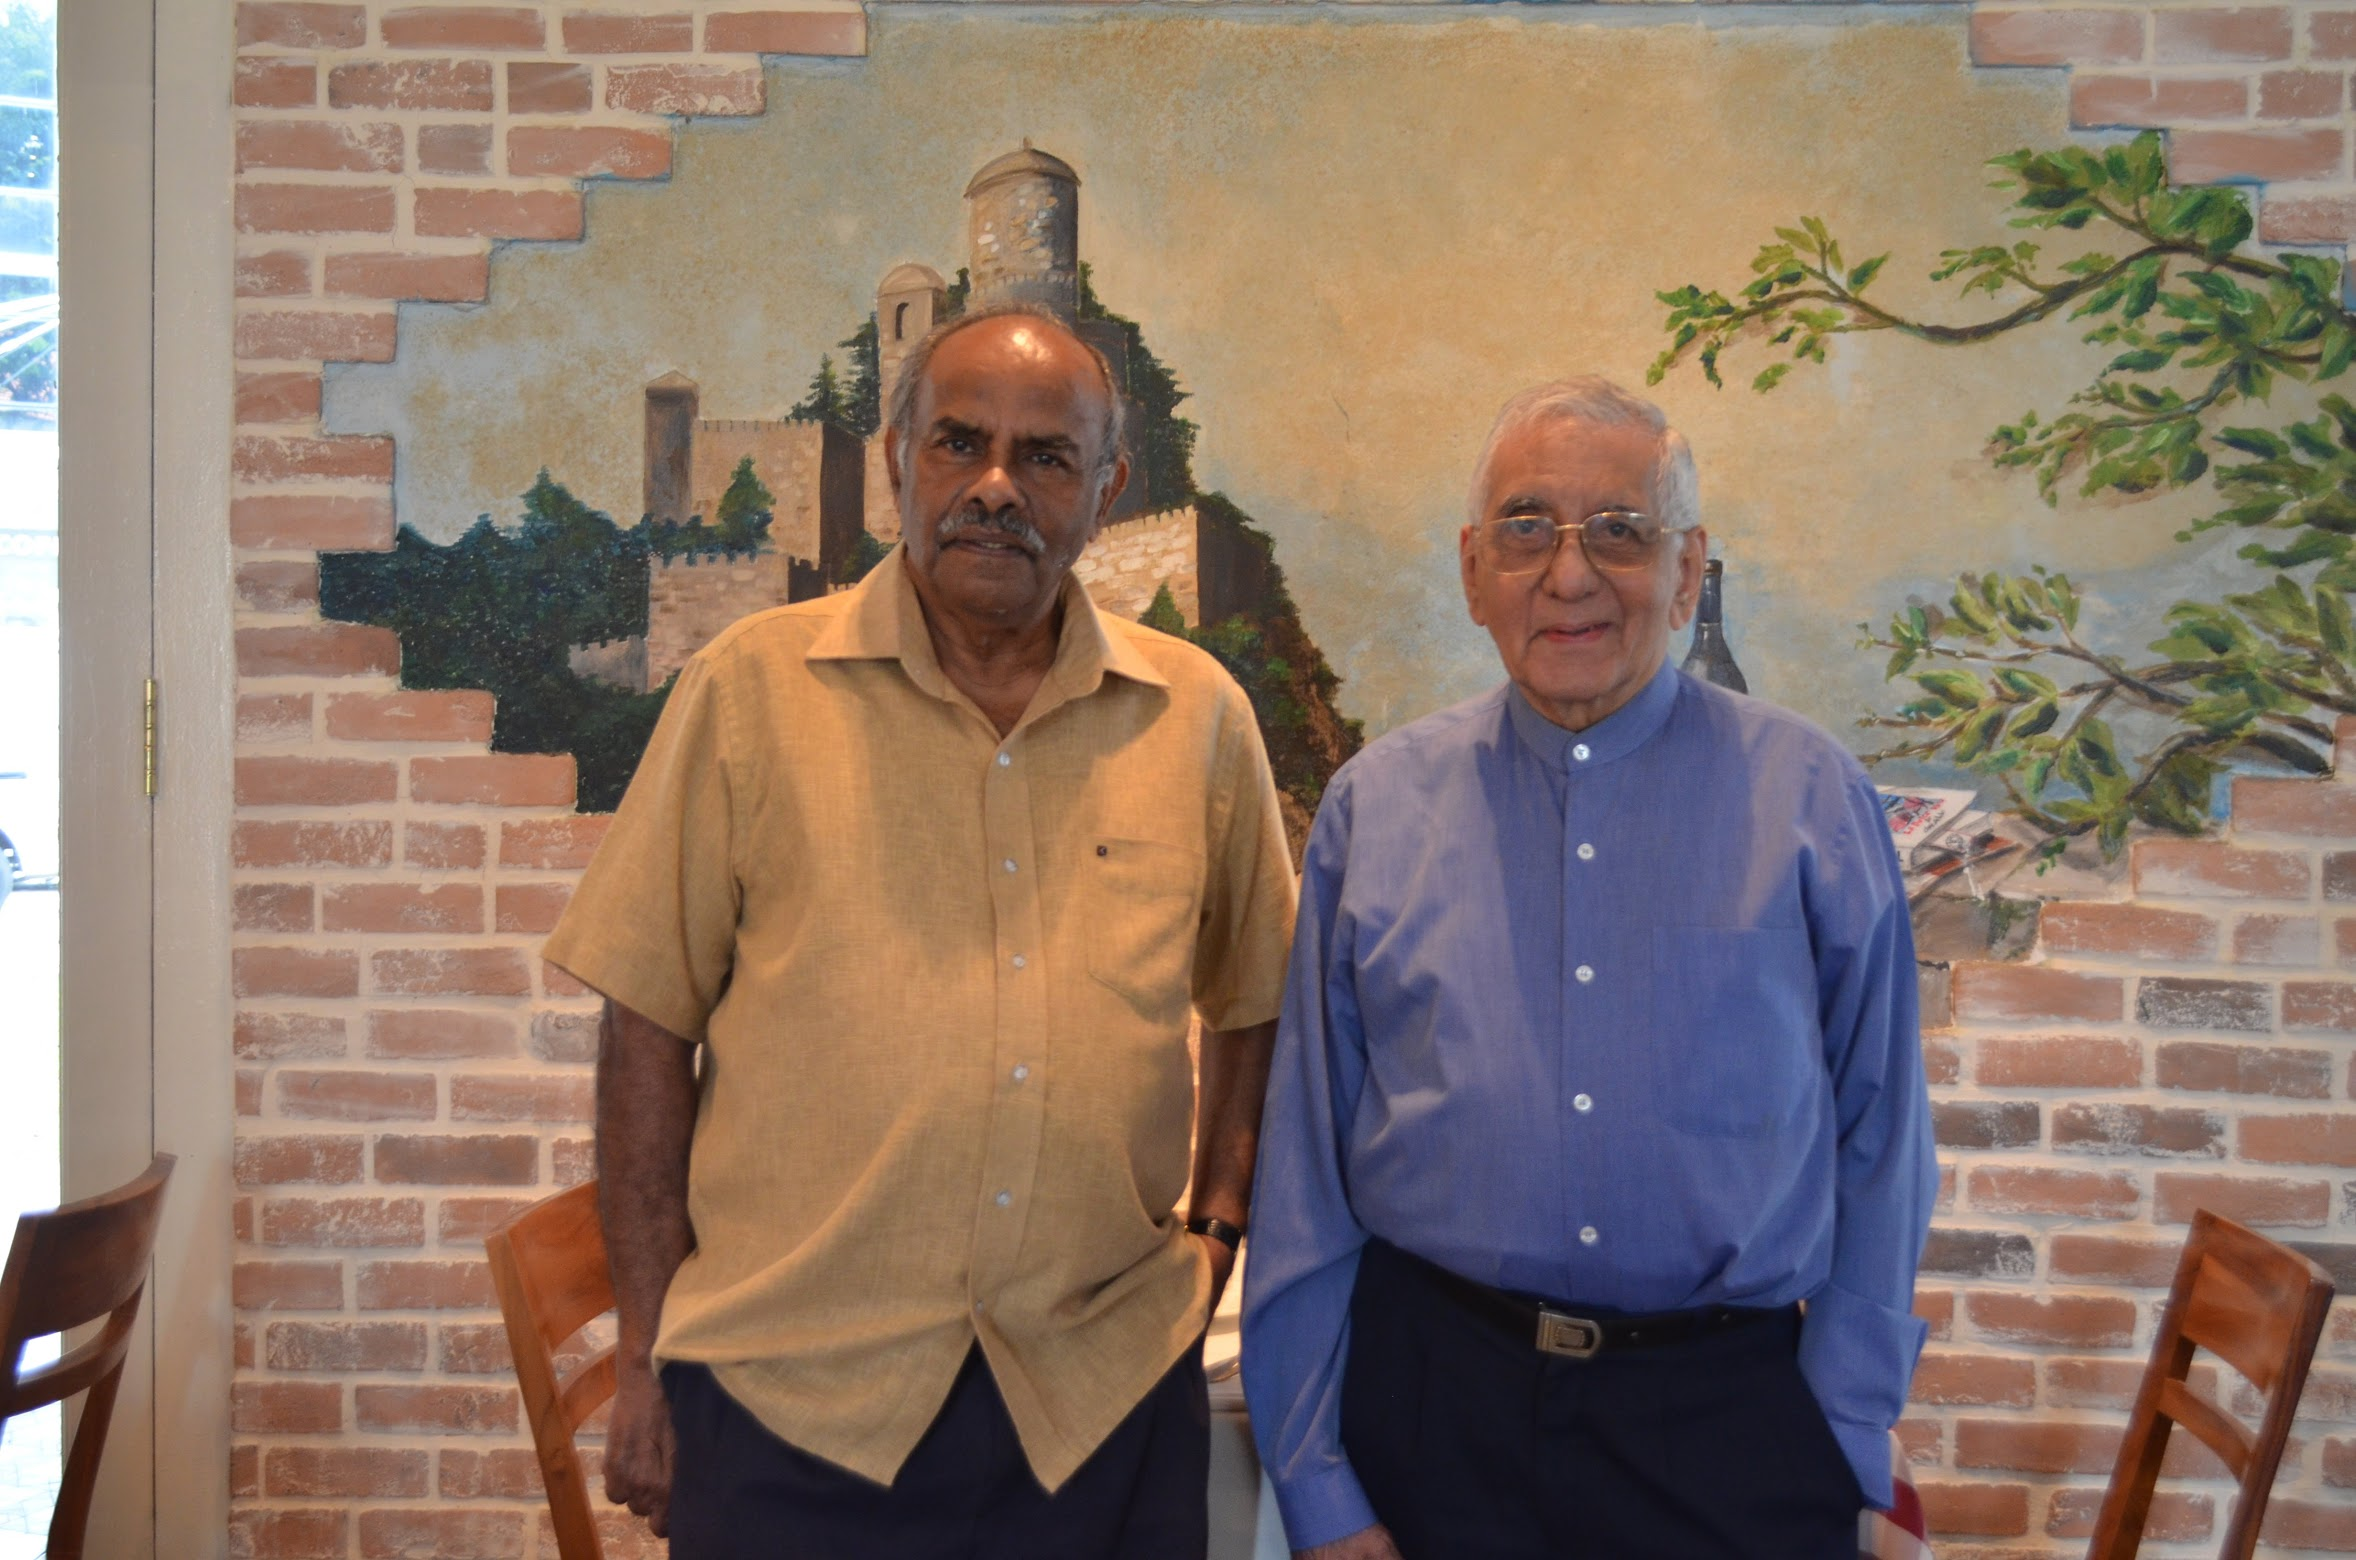 Mr K Kesavapany pictured with Rustom M. Ghadiali. Photo: Connected to India